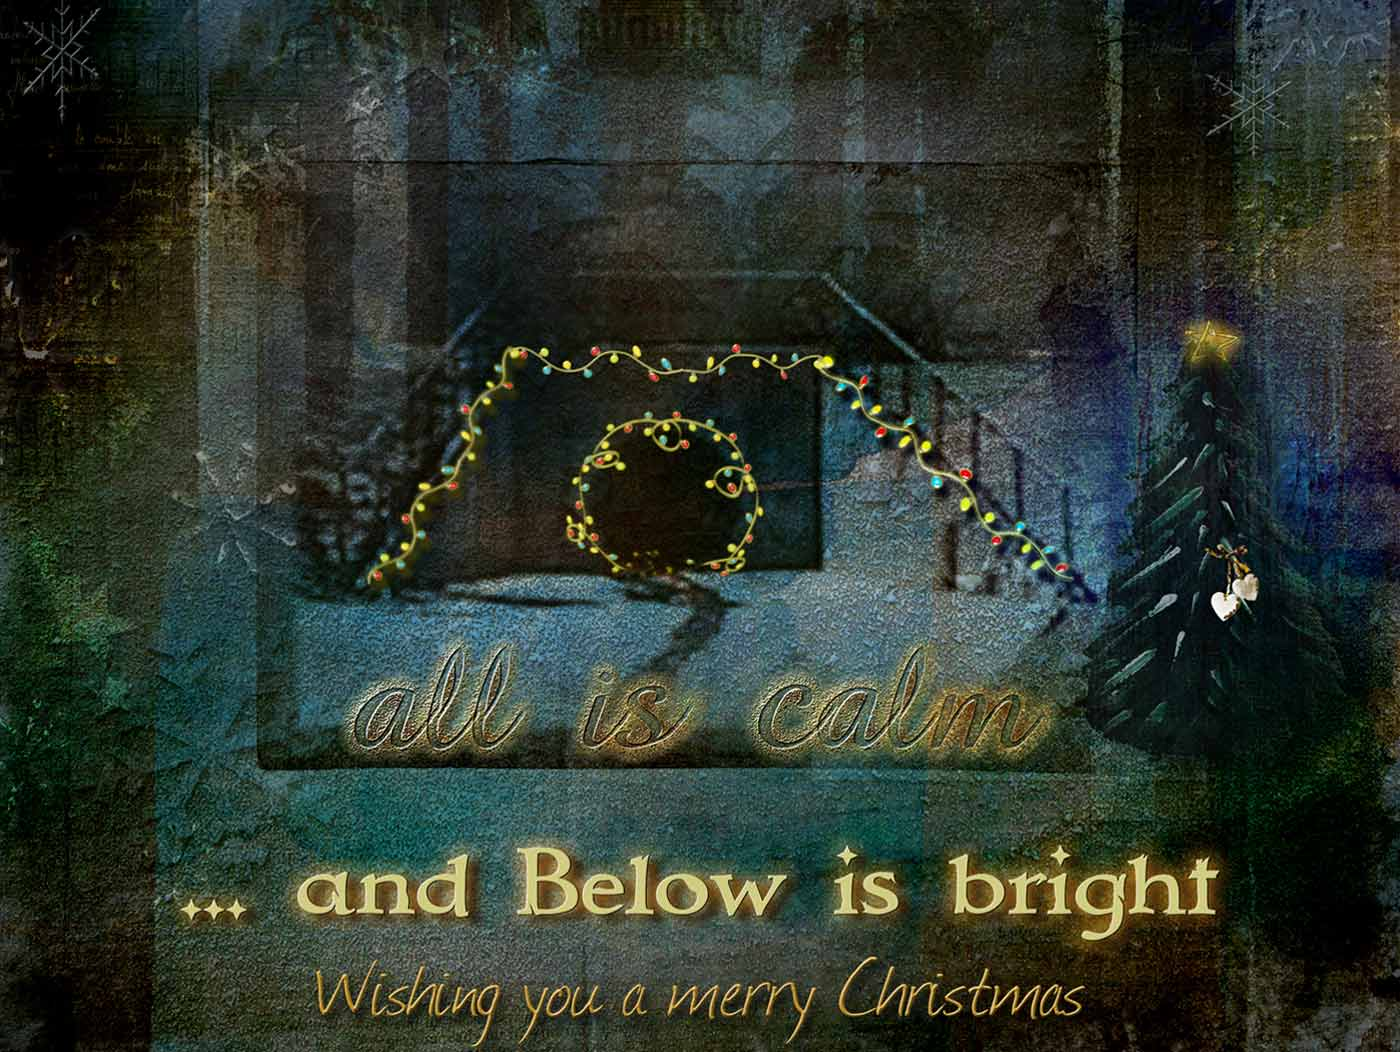 The tunnel entrance decorated with colored Christmas lights. Text reads: All is calm, and Below is bright. Wishing you a merry Christmas.